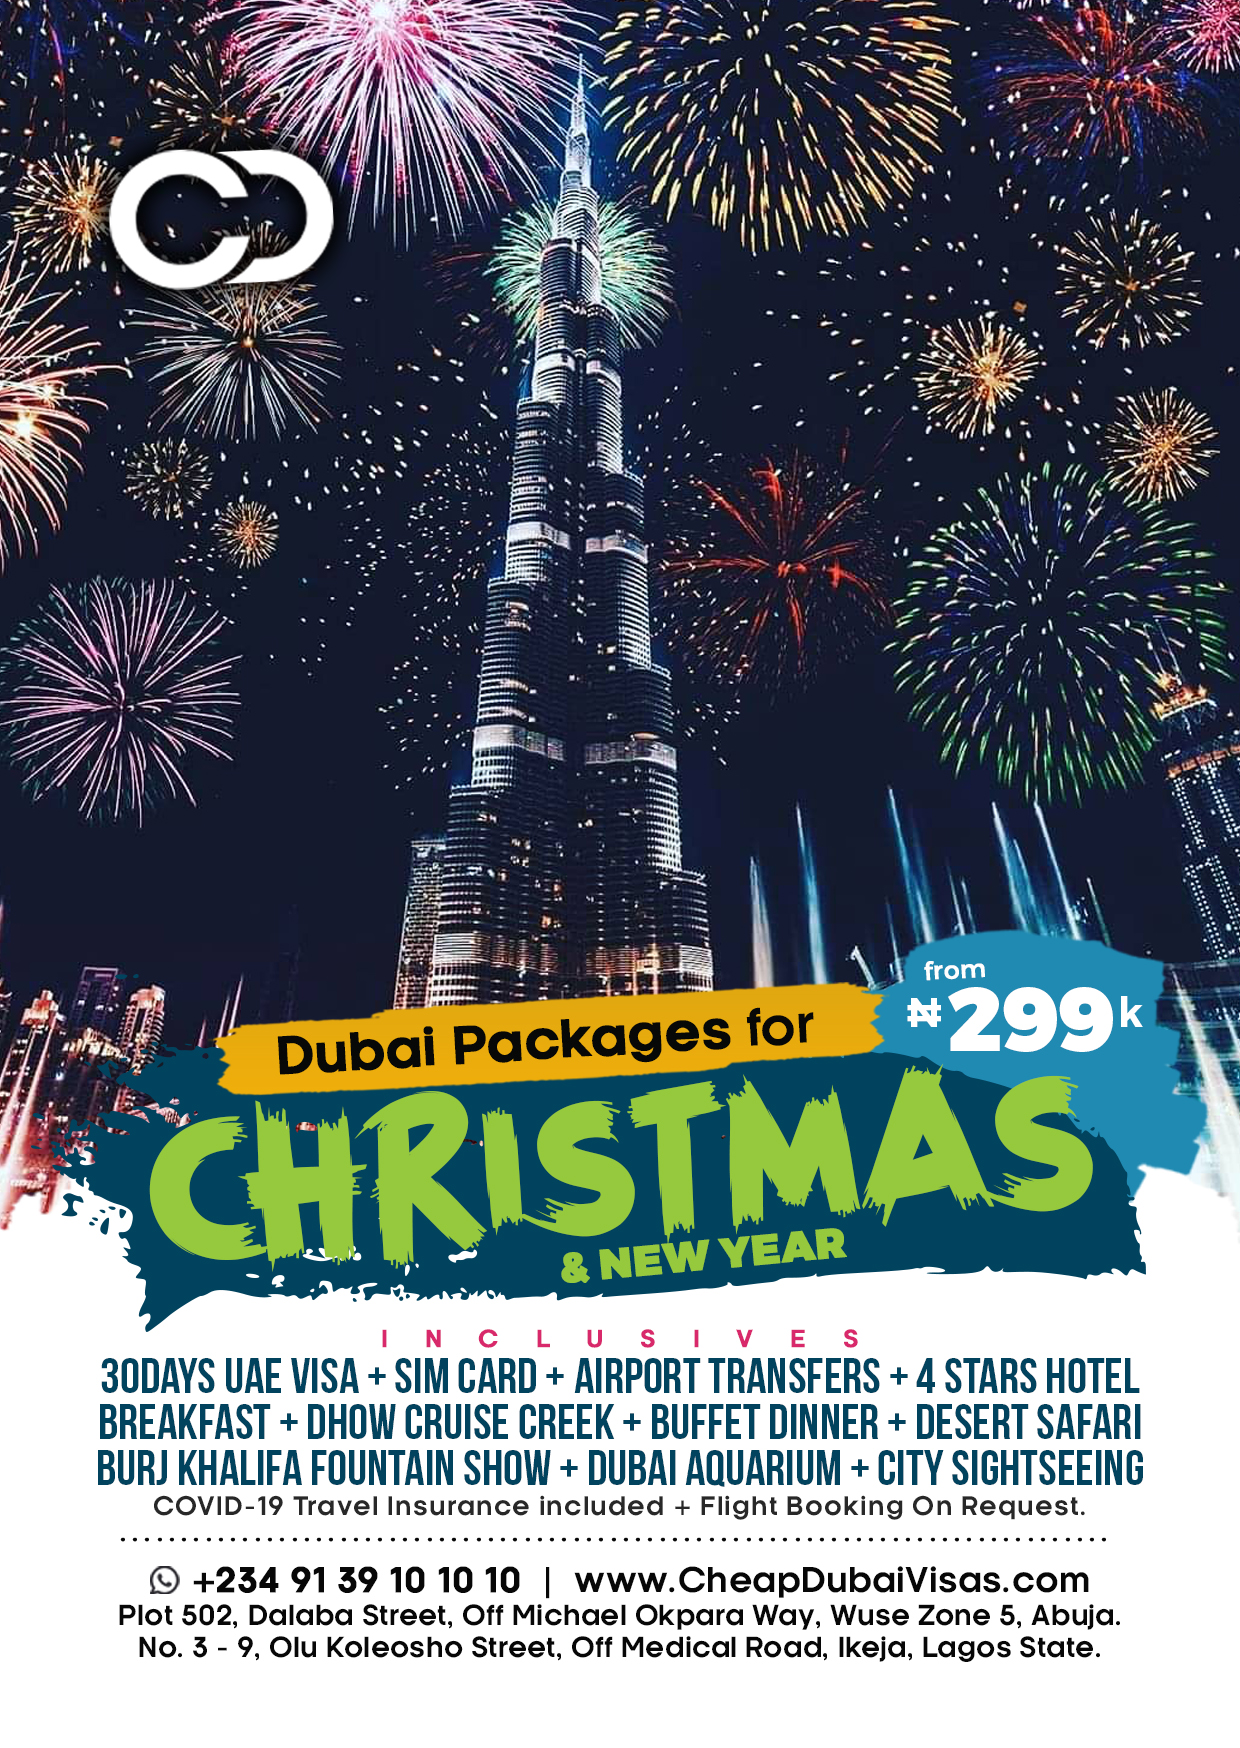 Dubai Christmas Packages Cheap Dubai Packages a Cheap Dubai Visas